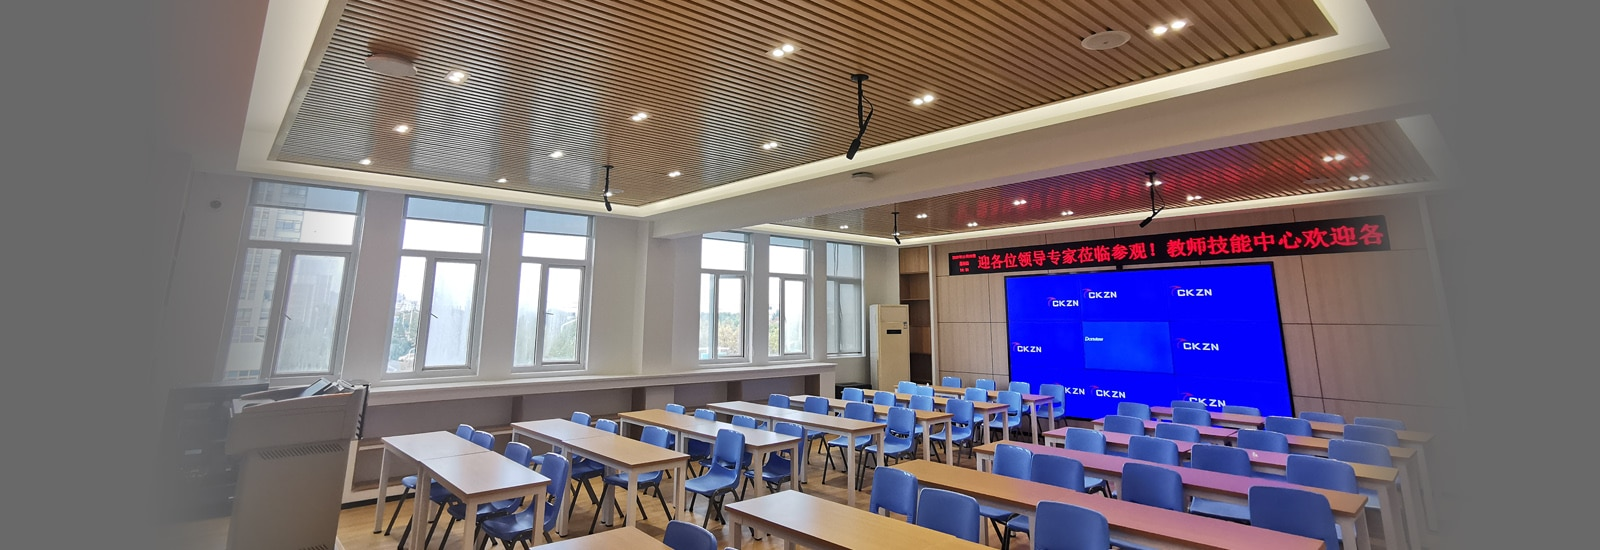 A classroom at Hefei University showing Beamforming Microphone installed on the ceiling